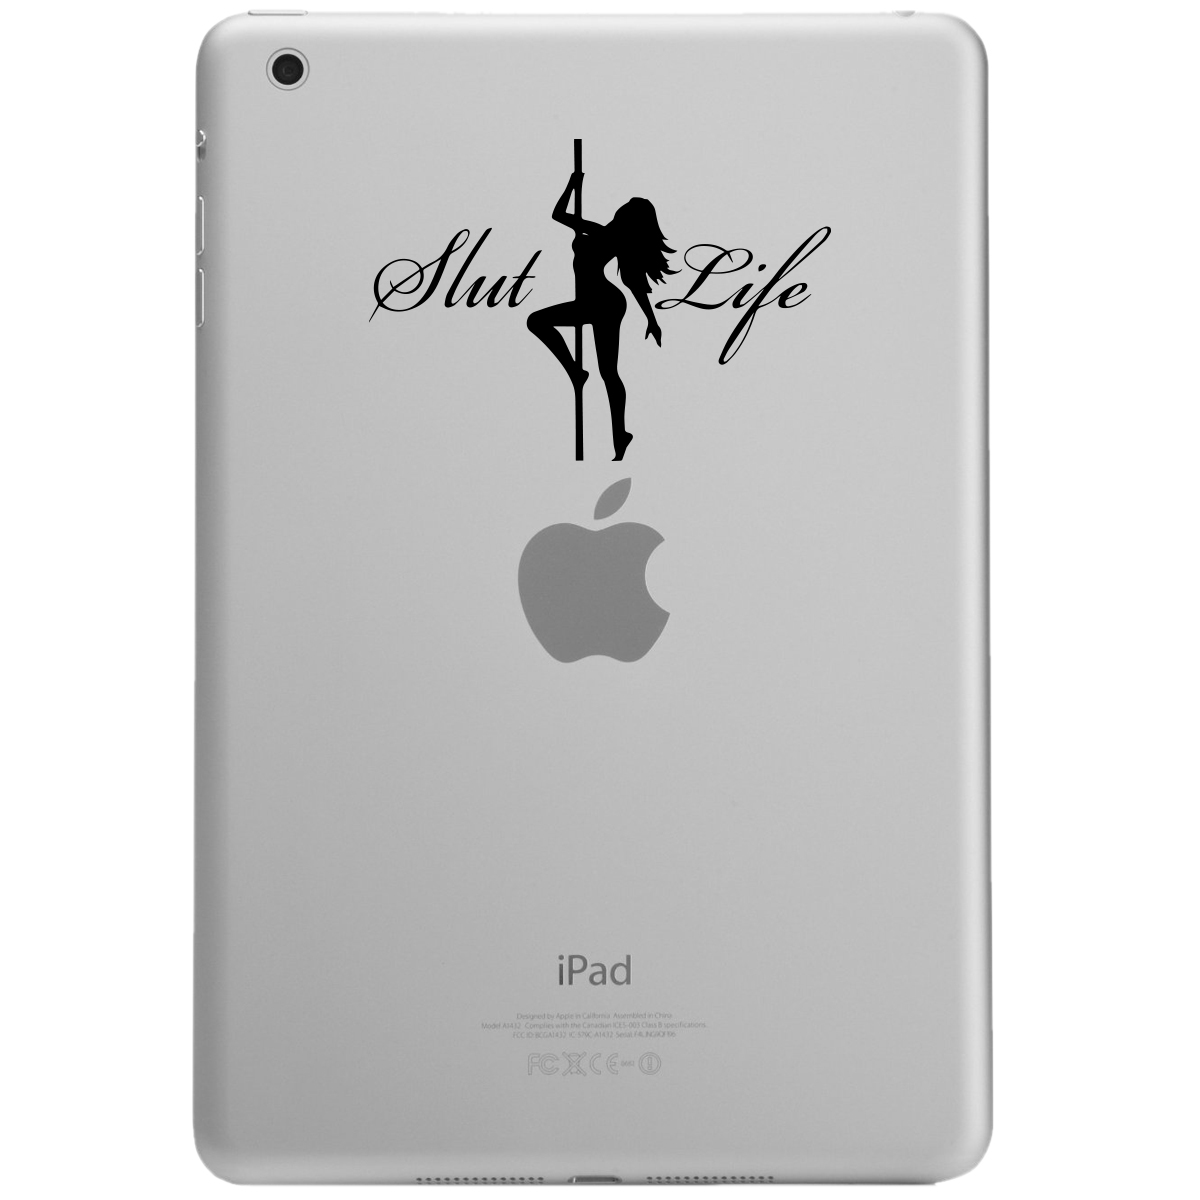 Sexy Stripper Girl Slut Life iPad Tablet Vinyl Sticker Decal